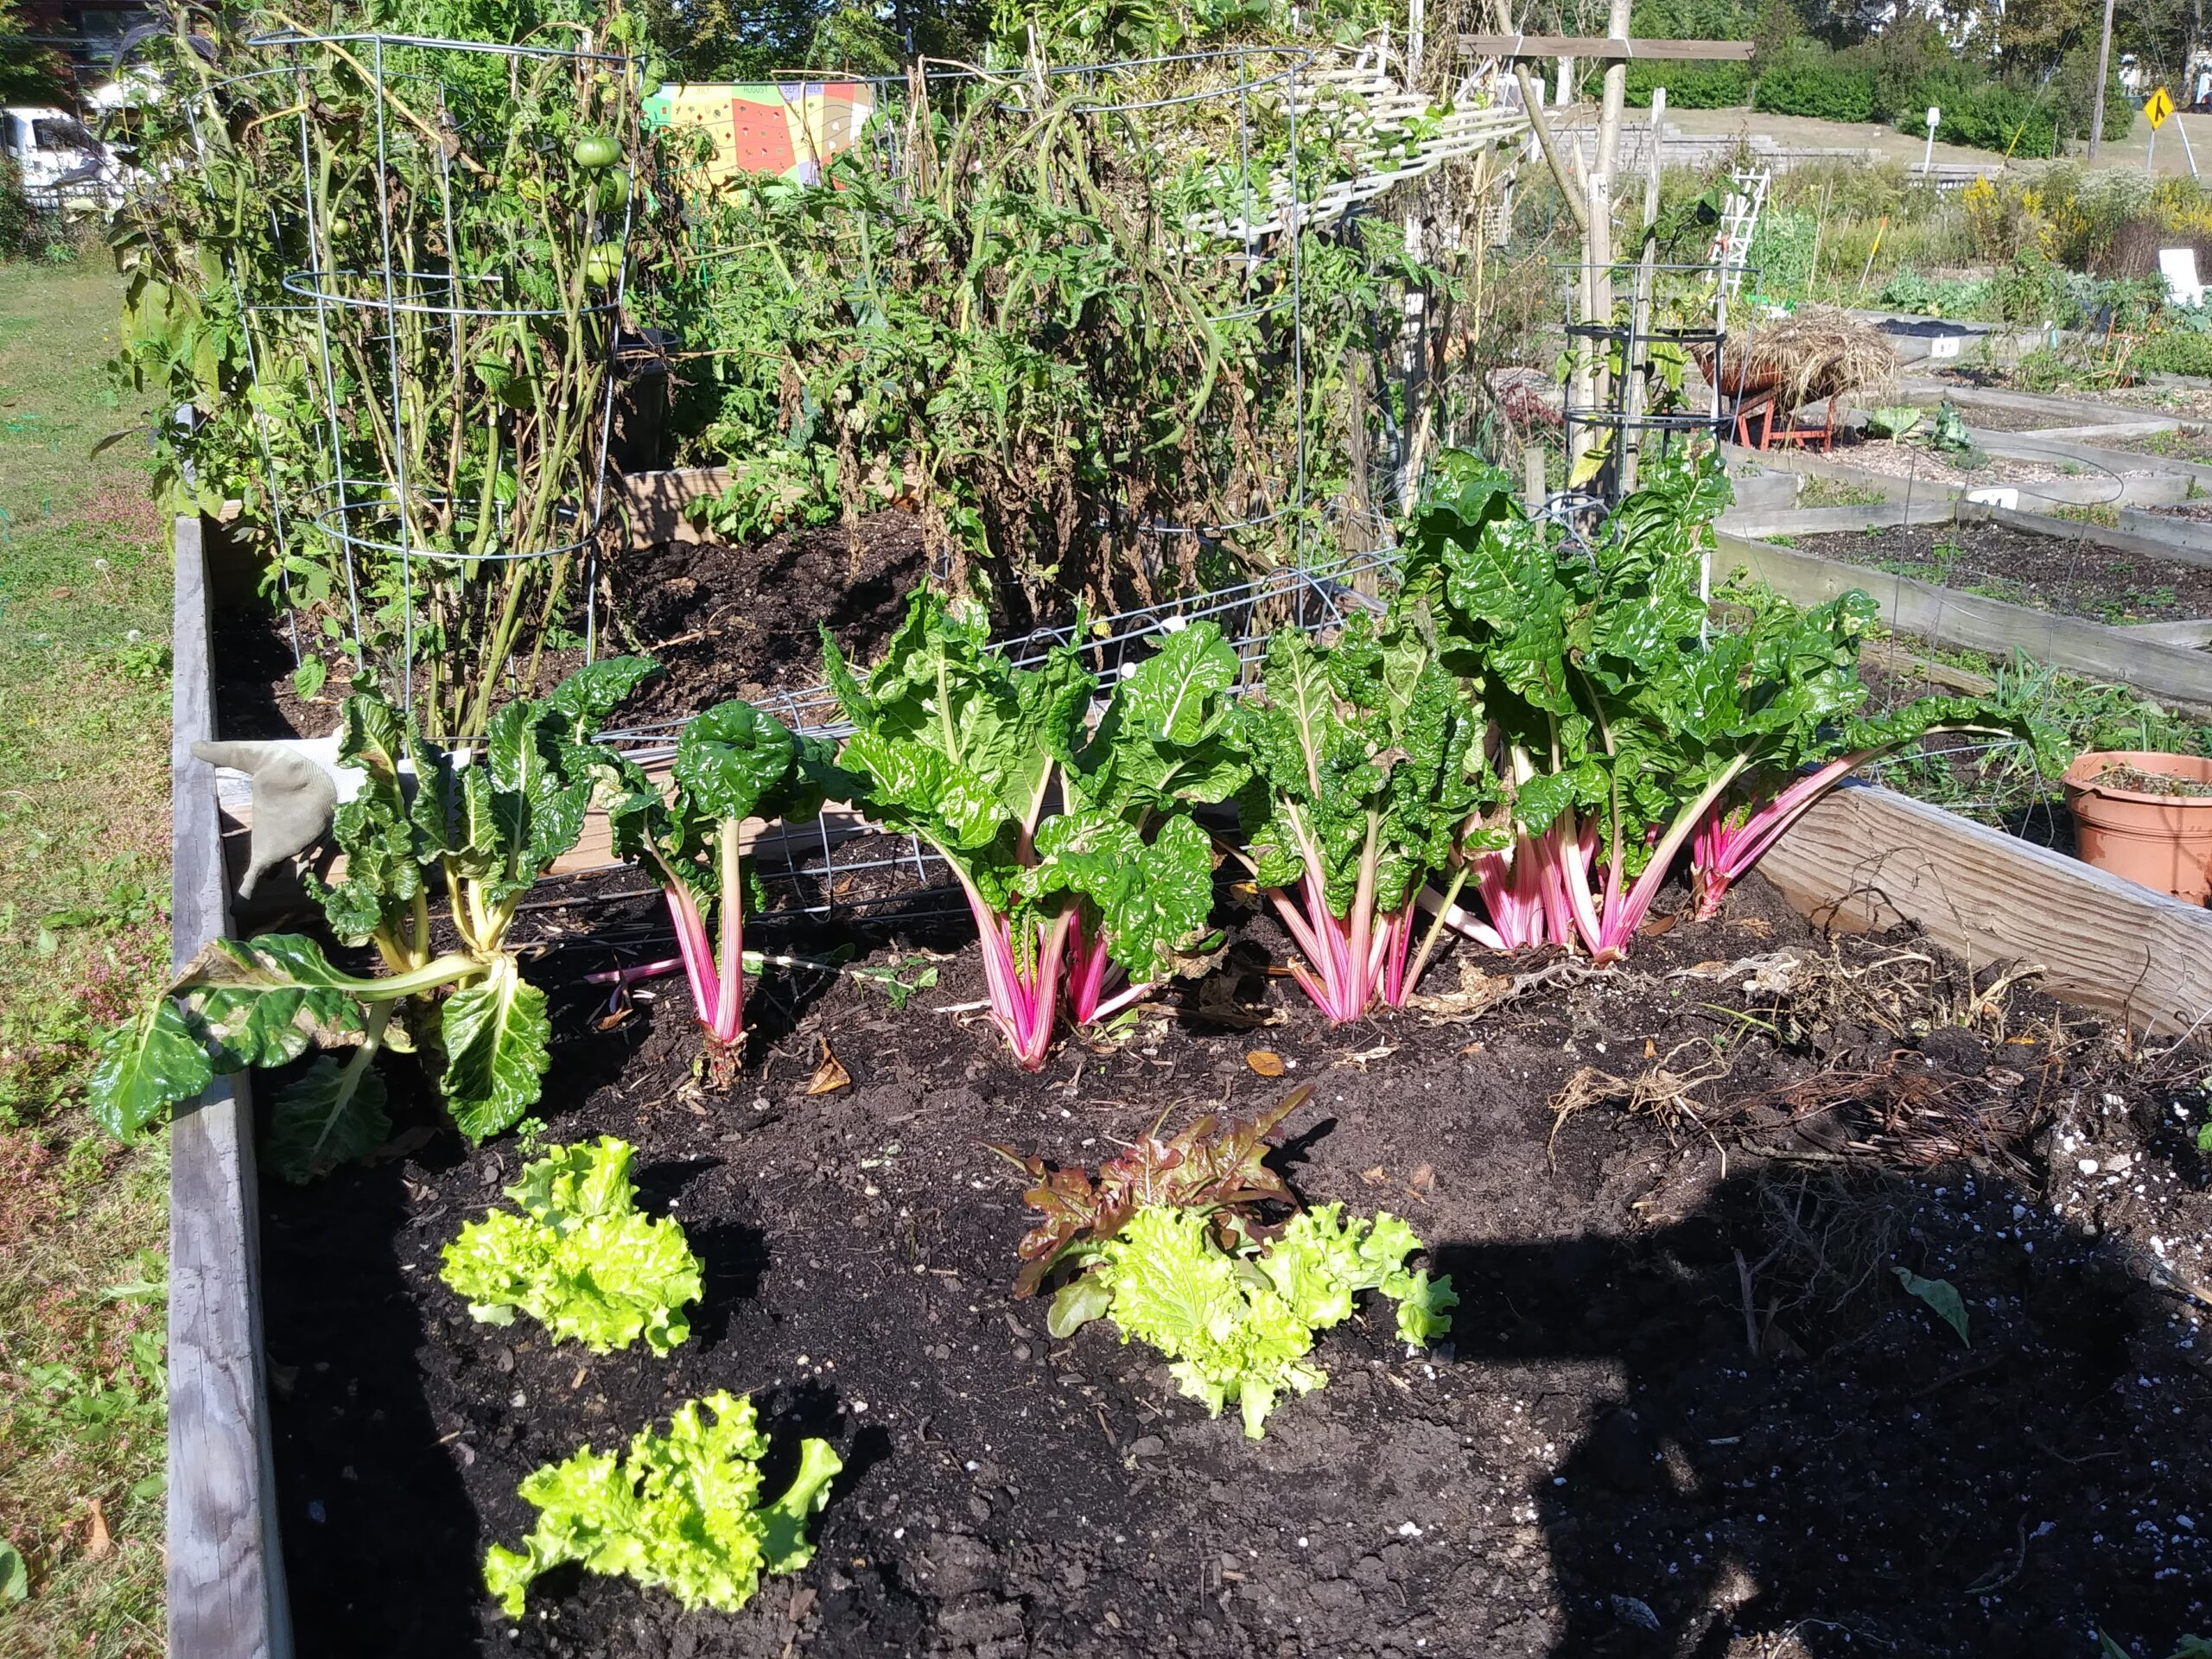 Swiss chard with pink stems and green lettuce growing